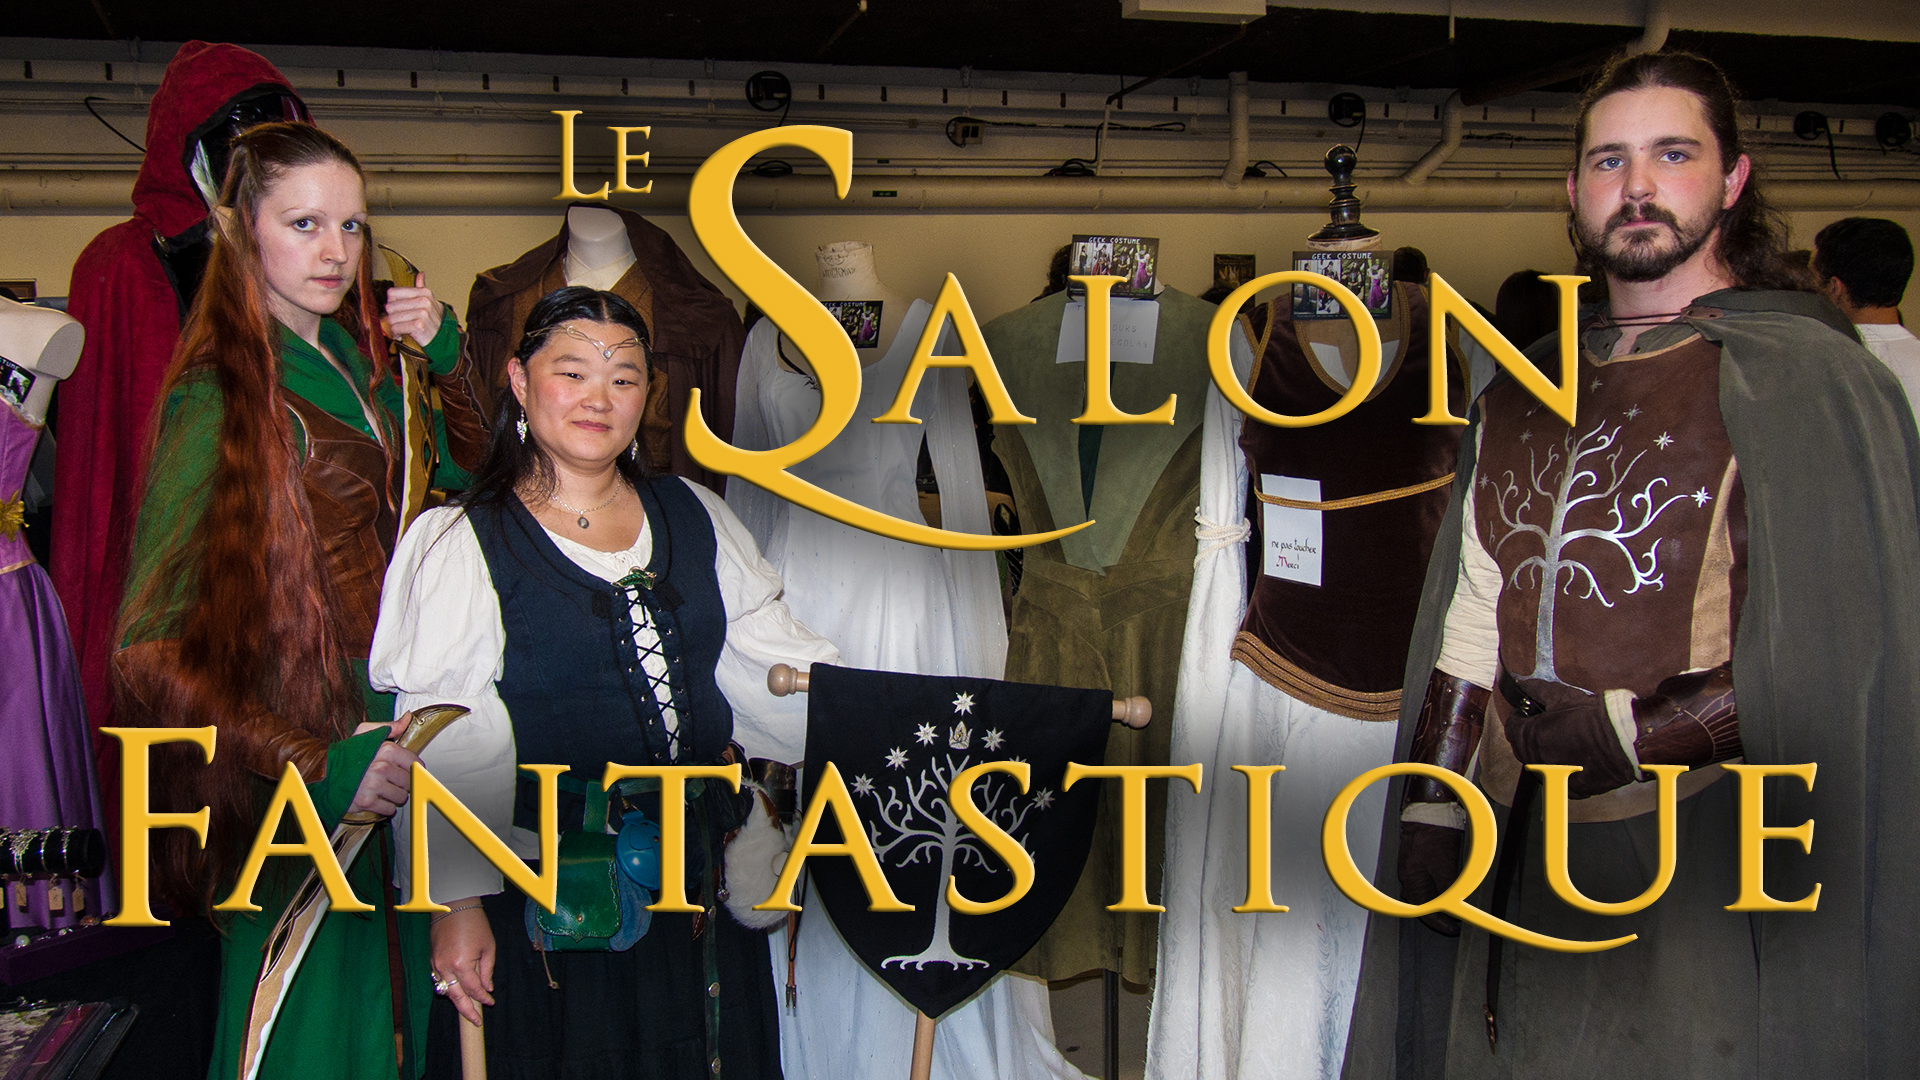 Le salon fantastique lenw culture geek web et jeux vid o for Espace champerret salon